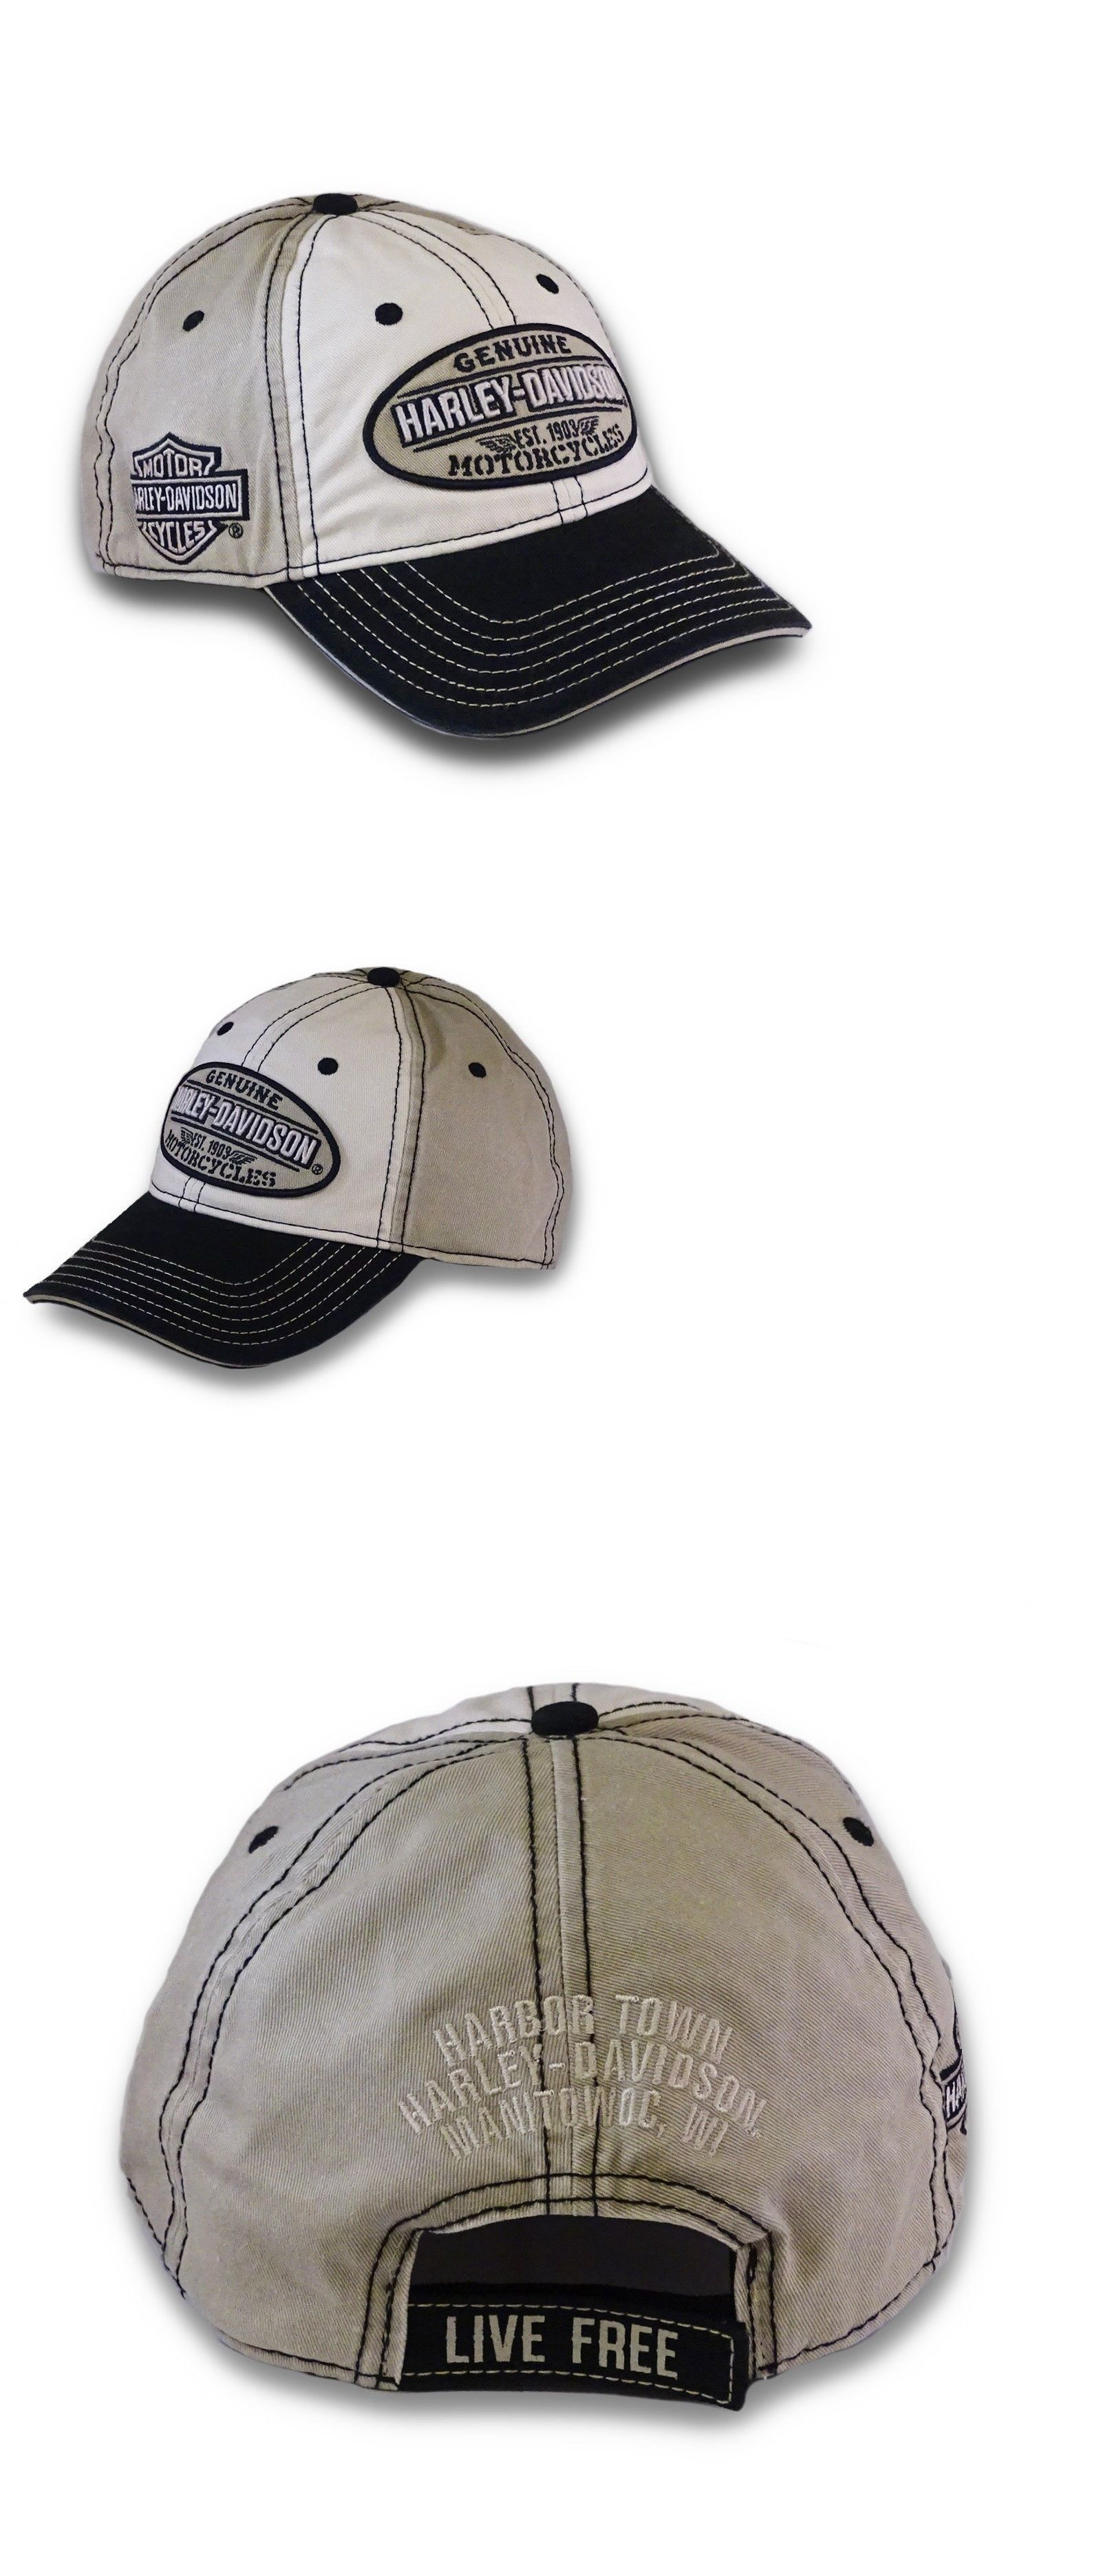 Hats 52365  Harley-Davidson Men S Embroidered Genuine Oval Washed Baseball  Cap Bcc21612 -  BUY IT NOW ONLY   24.25 on  eBay  embroidered  genuine   washed   ... 1bb9ffa04f83